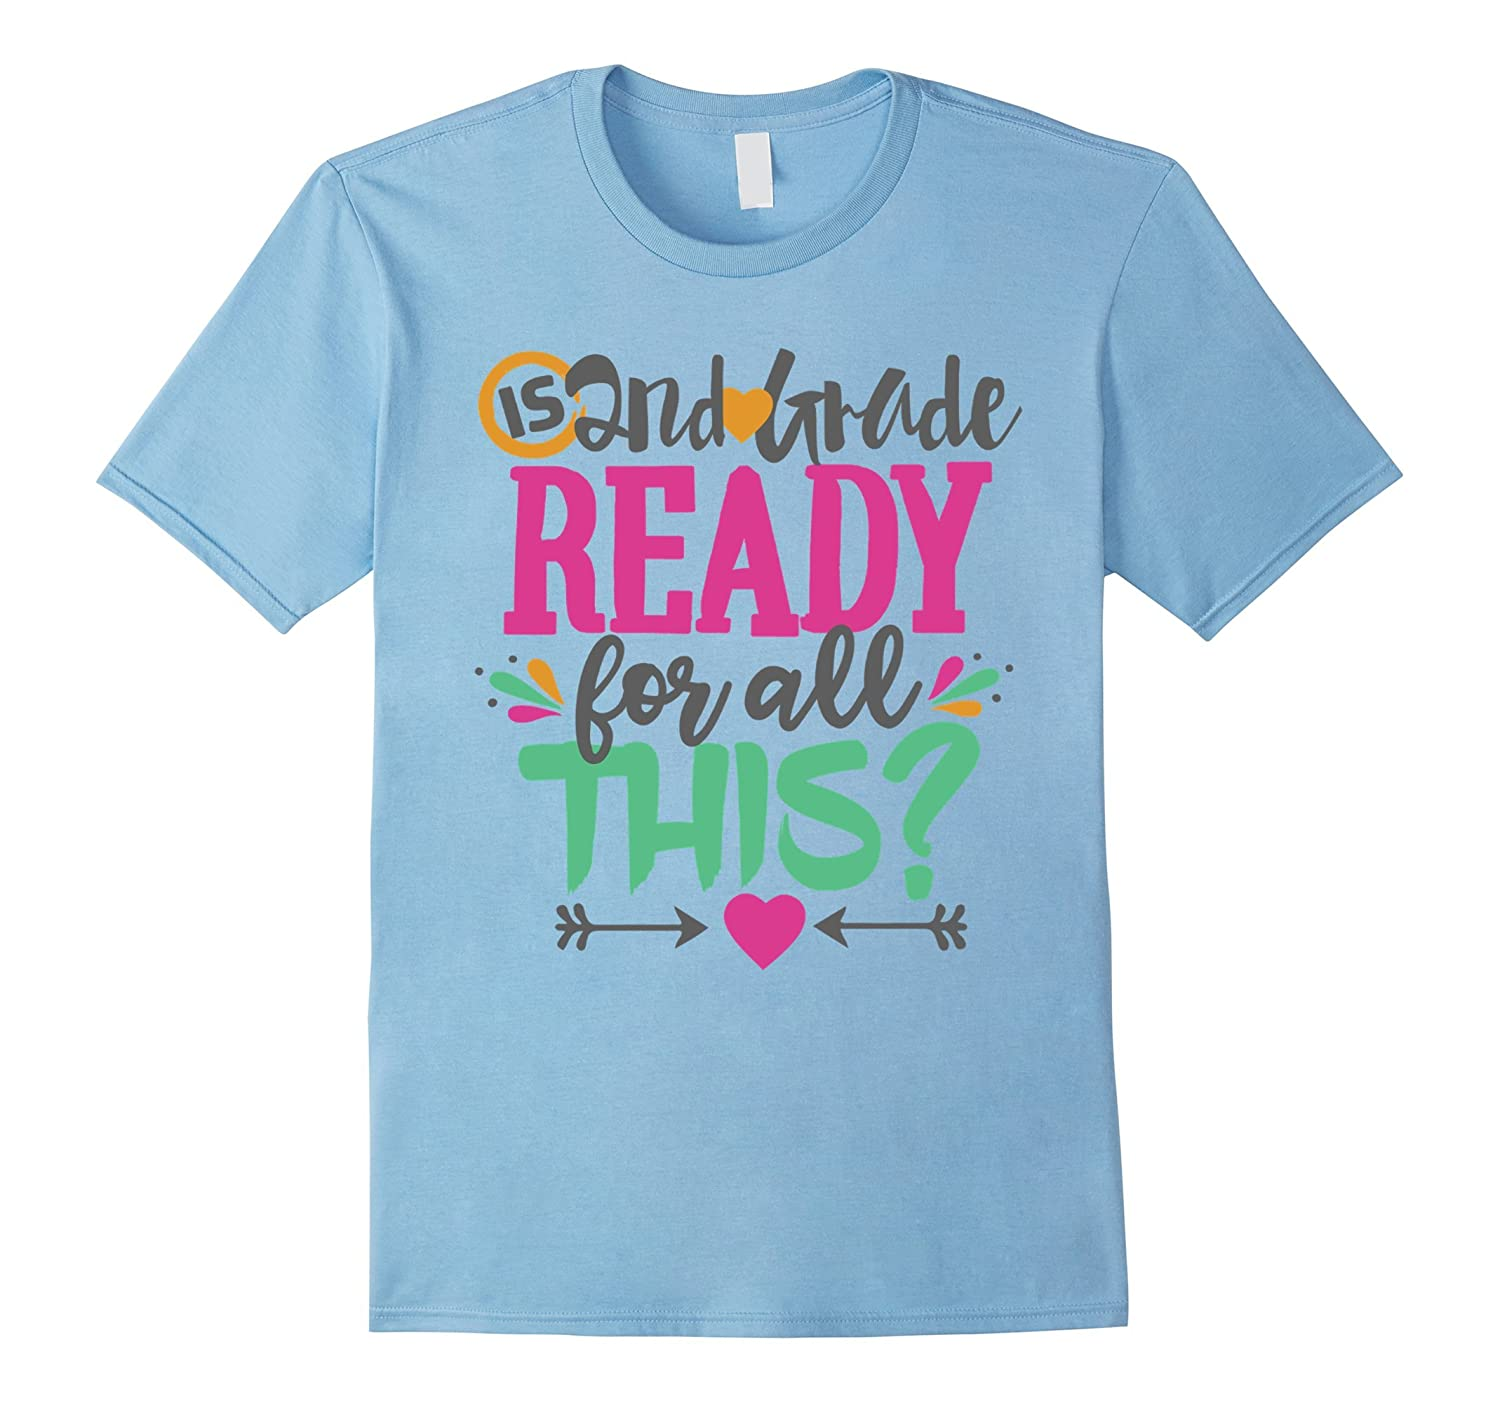 2nd Second Grade Kids Shirt Back To School Gift T Shirt